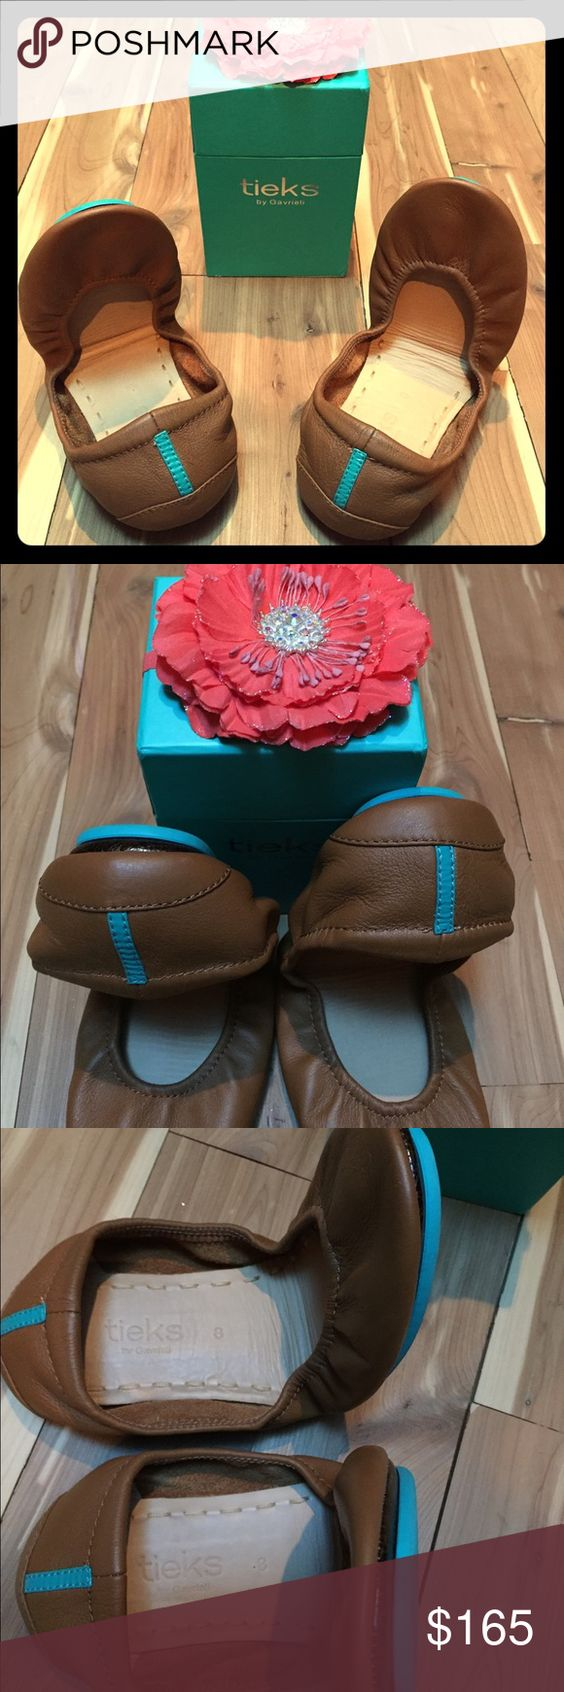 "Chestnut Tieks EEUC Chestnut Tieks in near perfect condition. Worn once outdoors. This shade does not compliment my skin tone well and it feels a bit snug. Made of quality Italian leather and sale includes box and Tieks flower. Cross listed on alternate selling site ""Ⓜ️"" (preferred method) Tieks Shoes Flats & Loafers"